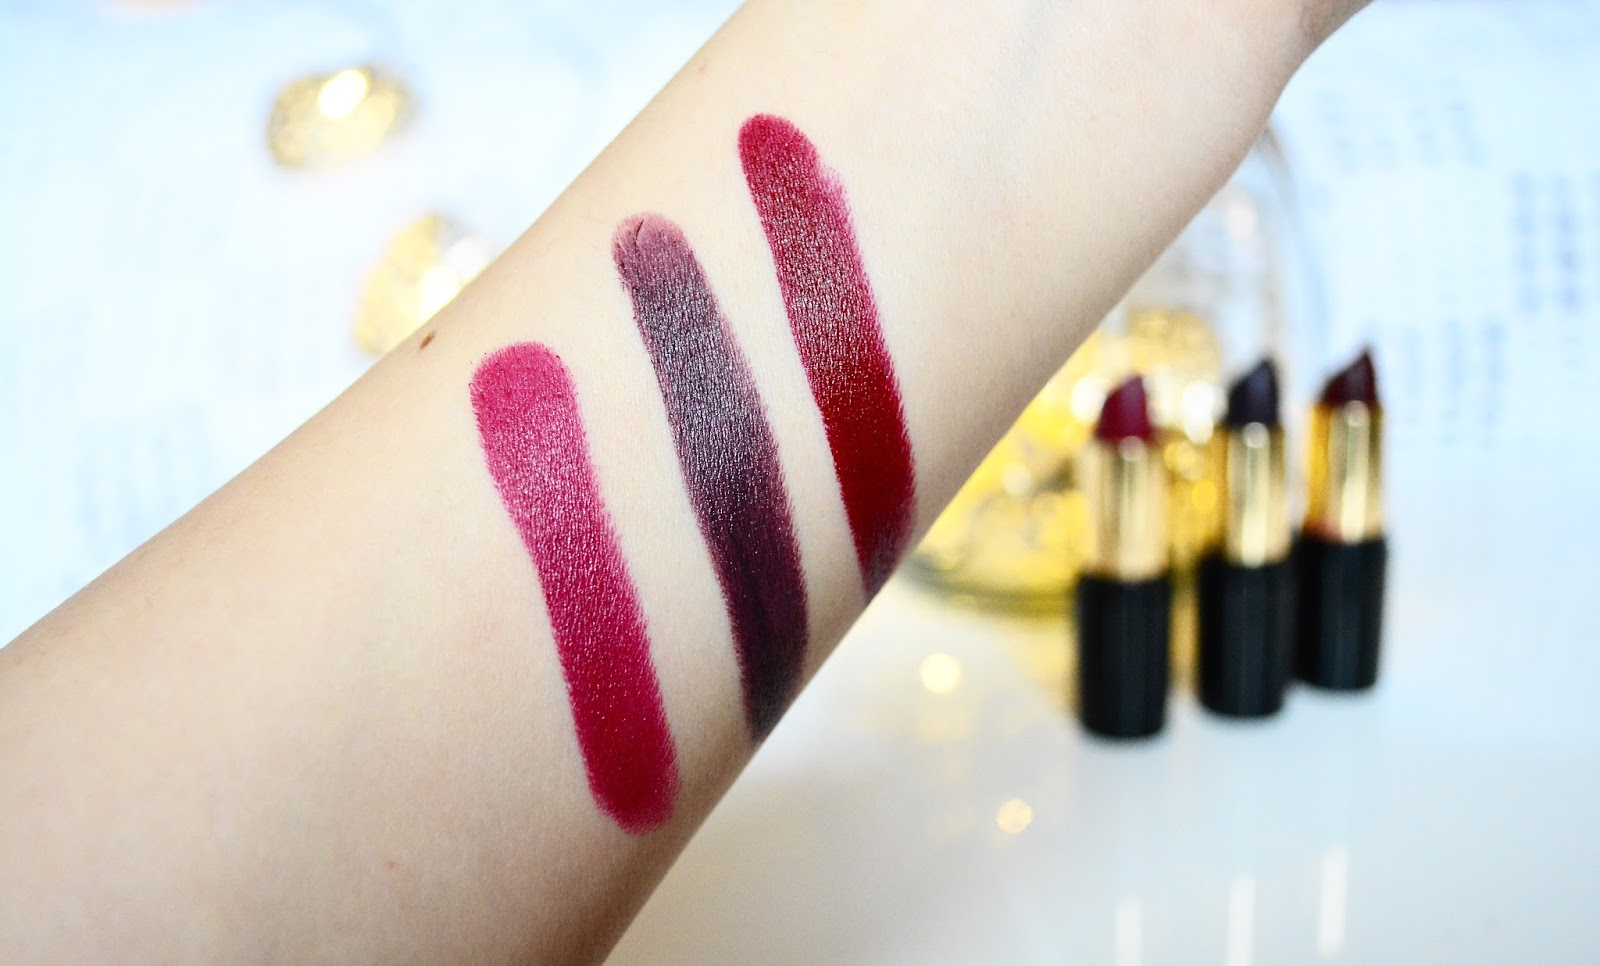 Lipstick, Collection, Collection Makeup, Collection Lipstick, Autumn Lipstick, Gothic Glam Lipsticks, Collection Gothic Glam Lipsticks